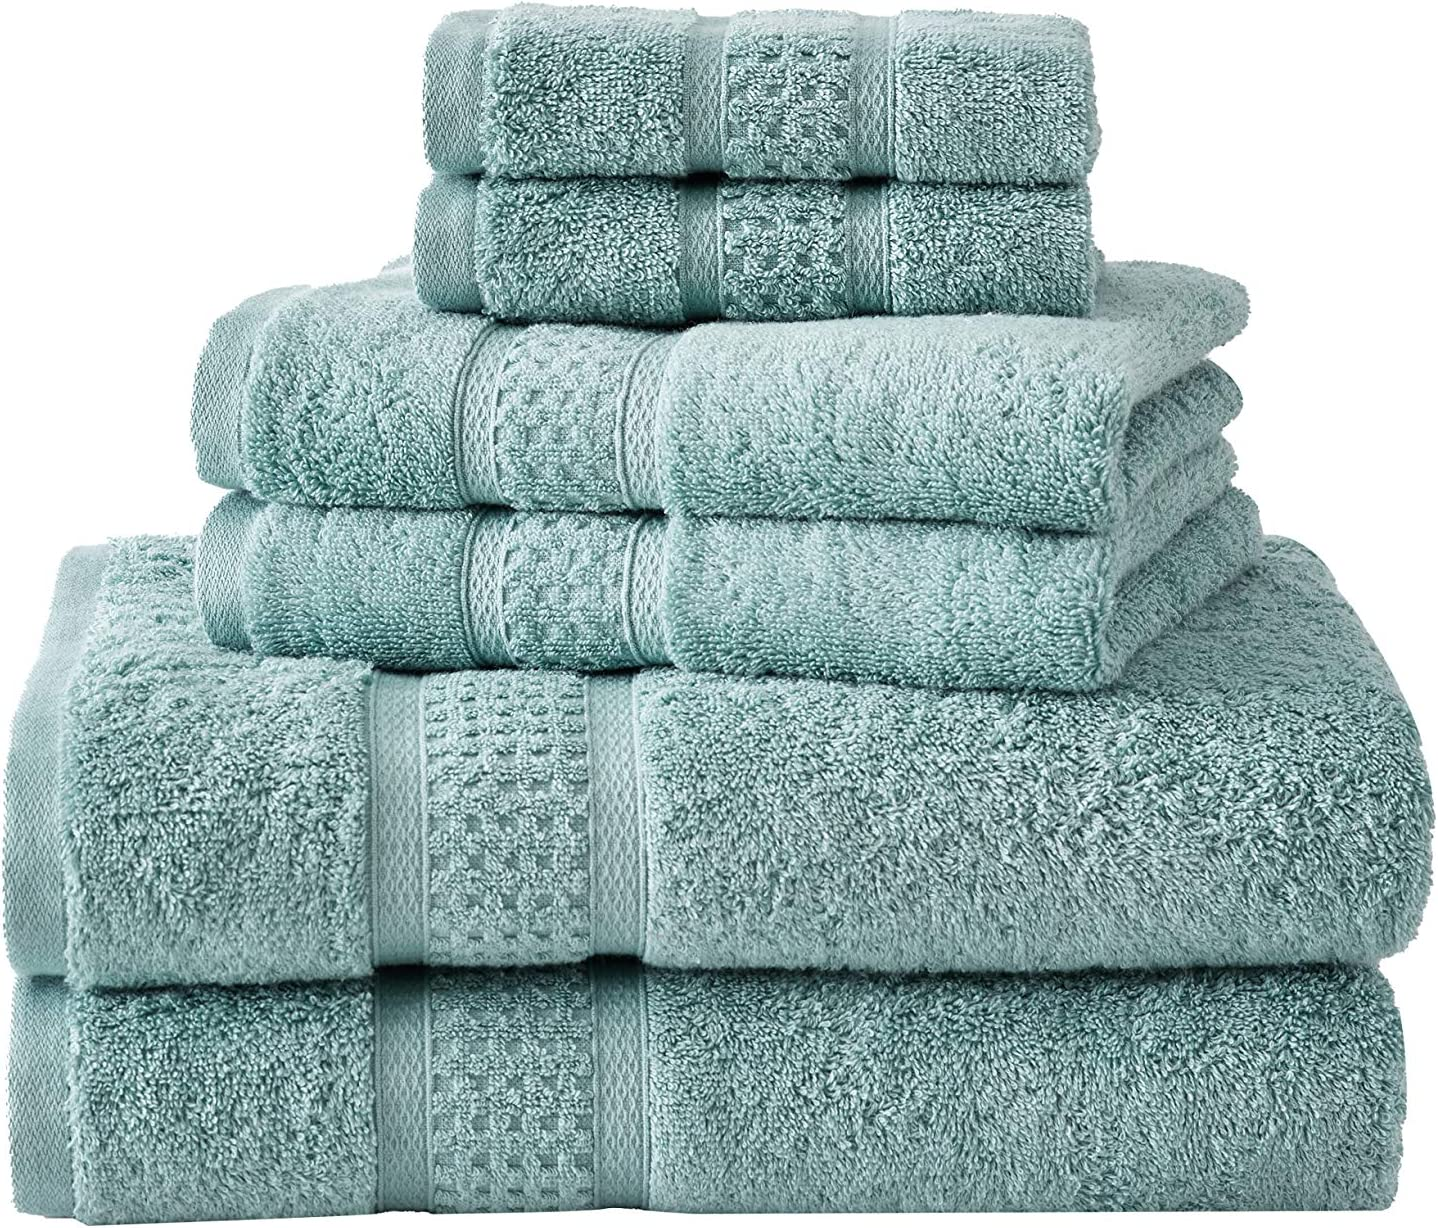 Nautica | Oceane Collection | 6 Piece Antibacterial Towel Set- Decorative Luxury Hotel & Spa Quality Bathroom Linens, Absorbent & Fade Resistant, 6 Piece, Turquoise